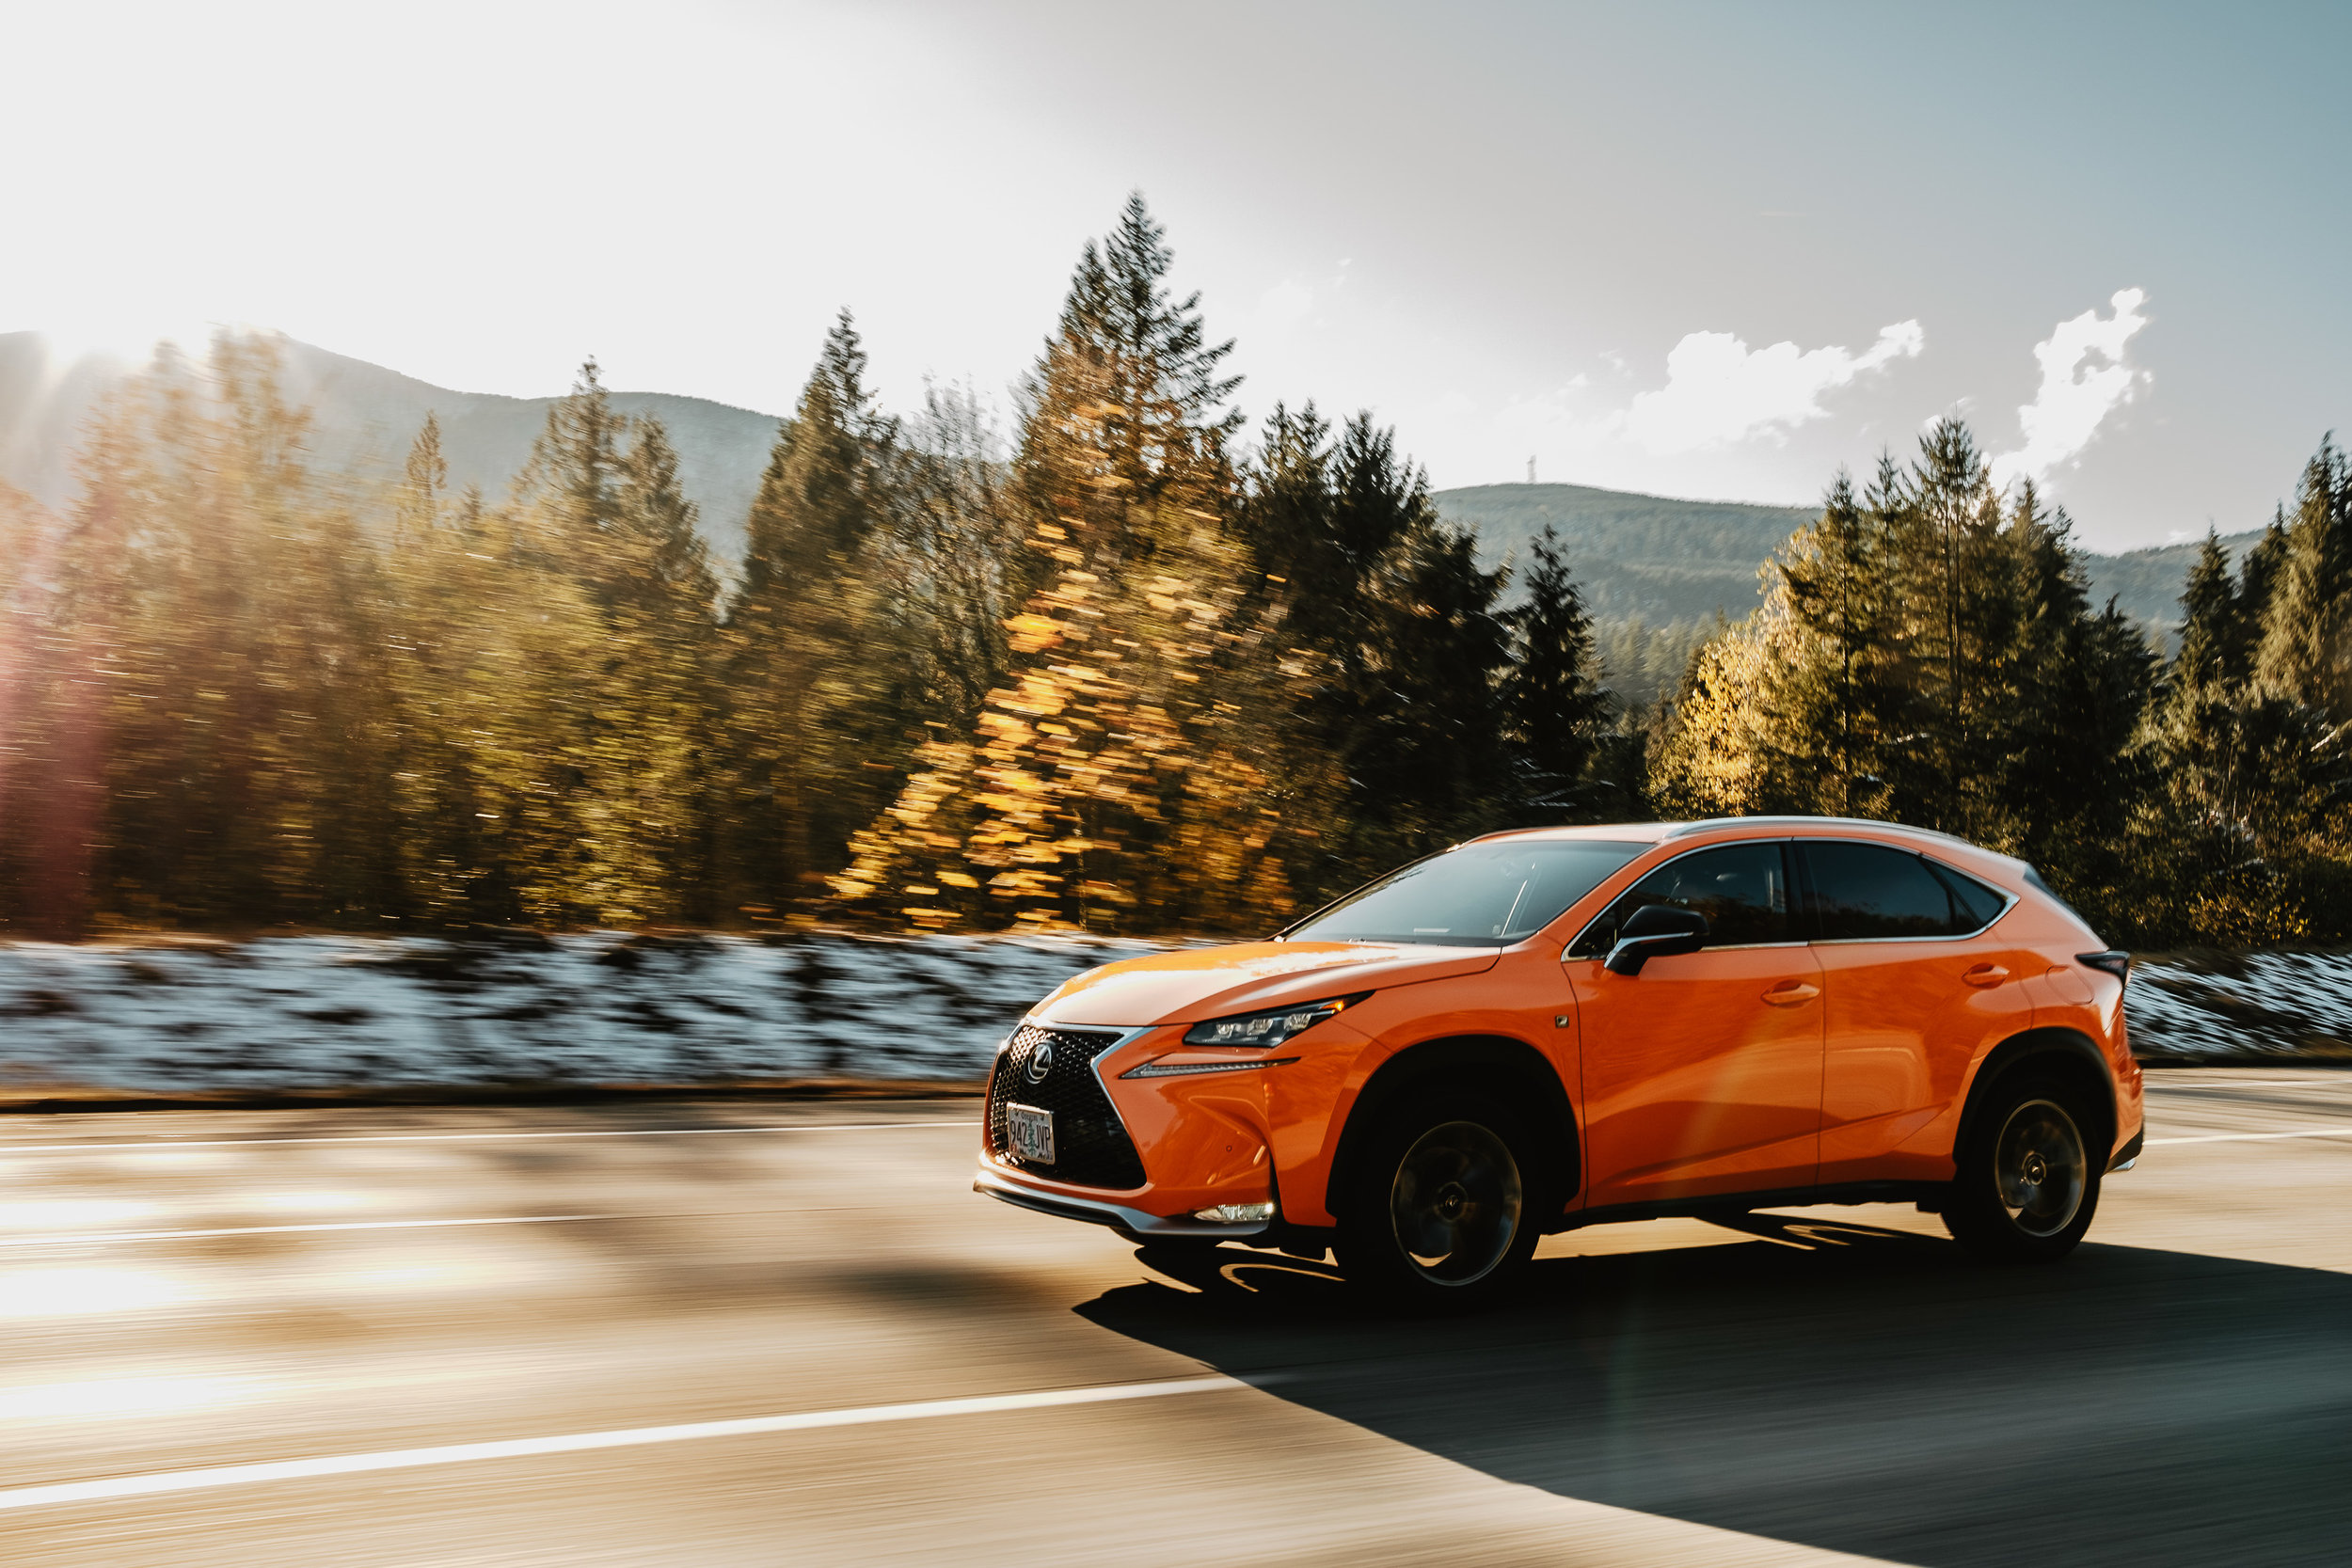 Lexus NX 2018 Spec Ad With Nelson Yong - CAPTUS PHOTOGRAPHY-0168.jpg